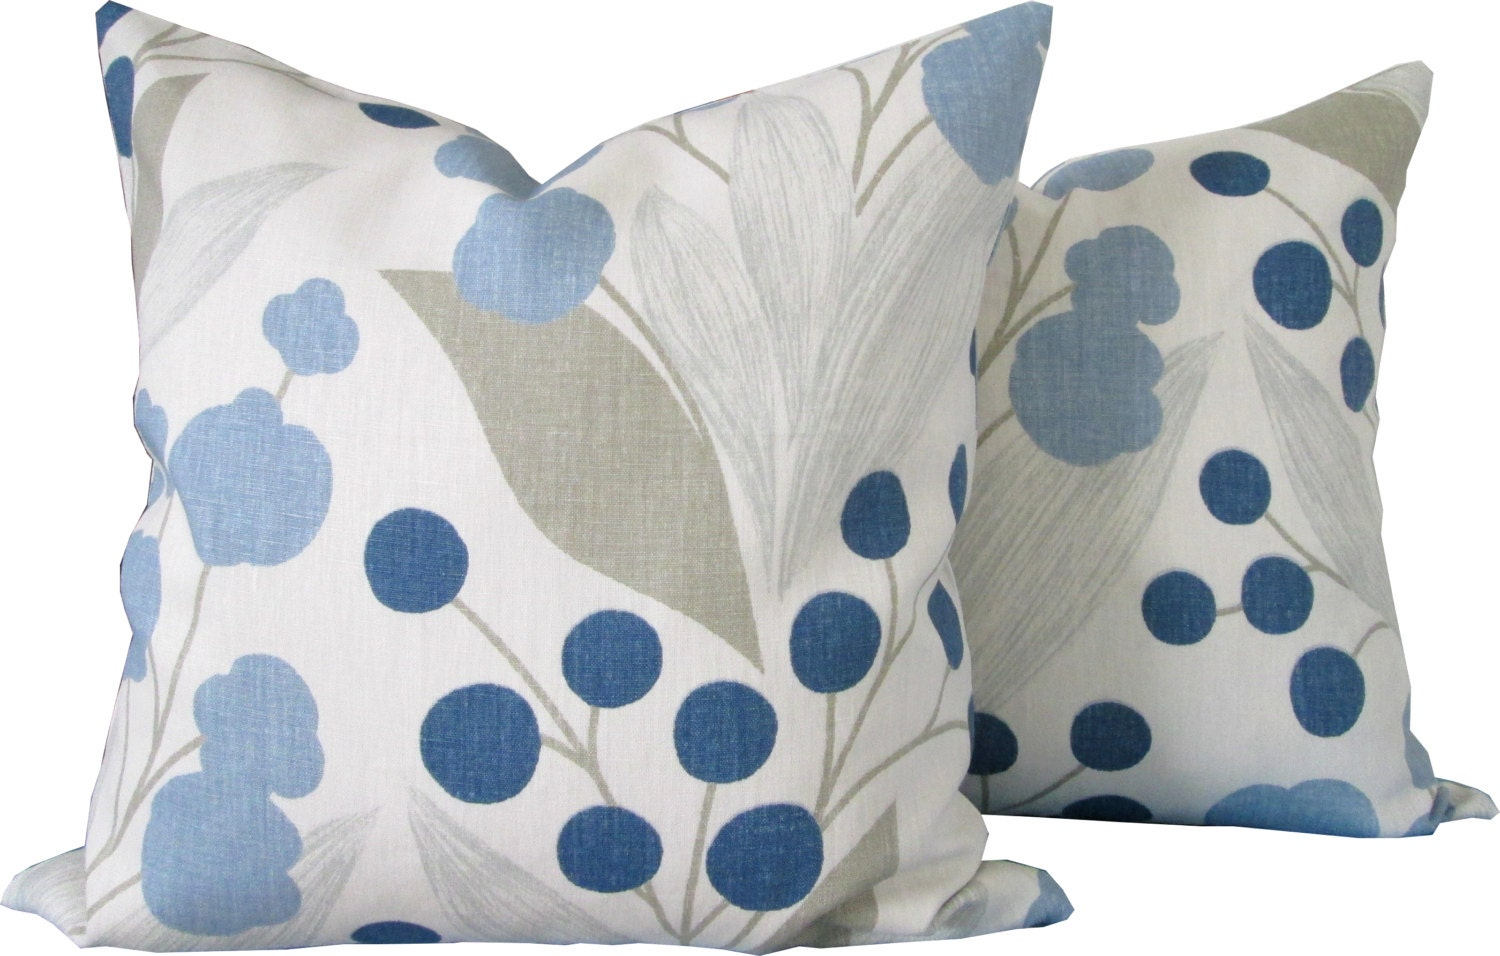 Designer Decorative Pillow Cover-Kravet-Floral Design-Double